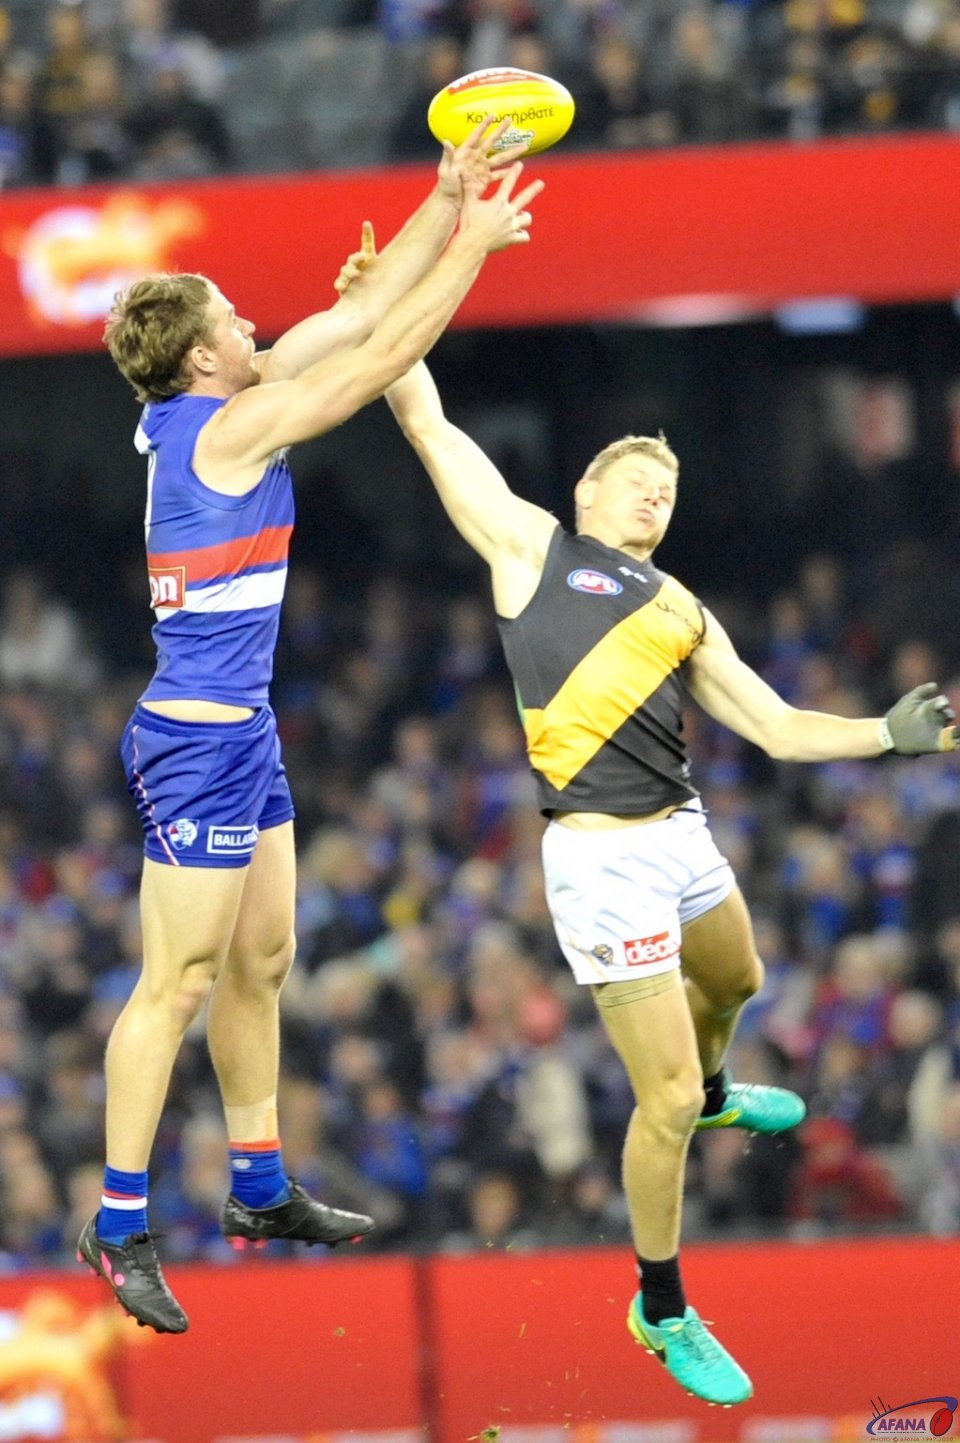 Brandon Ellis attempts to spoil the Jake Stringer Mark